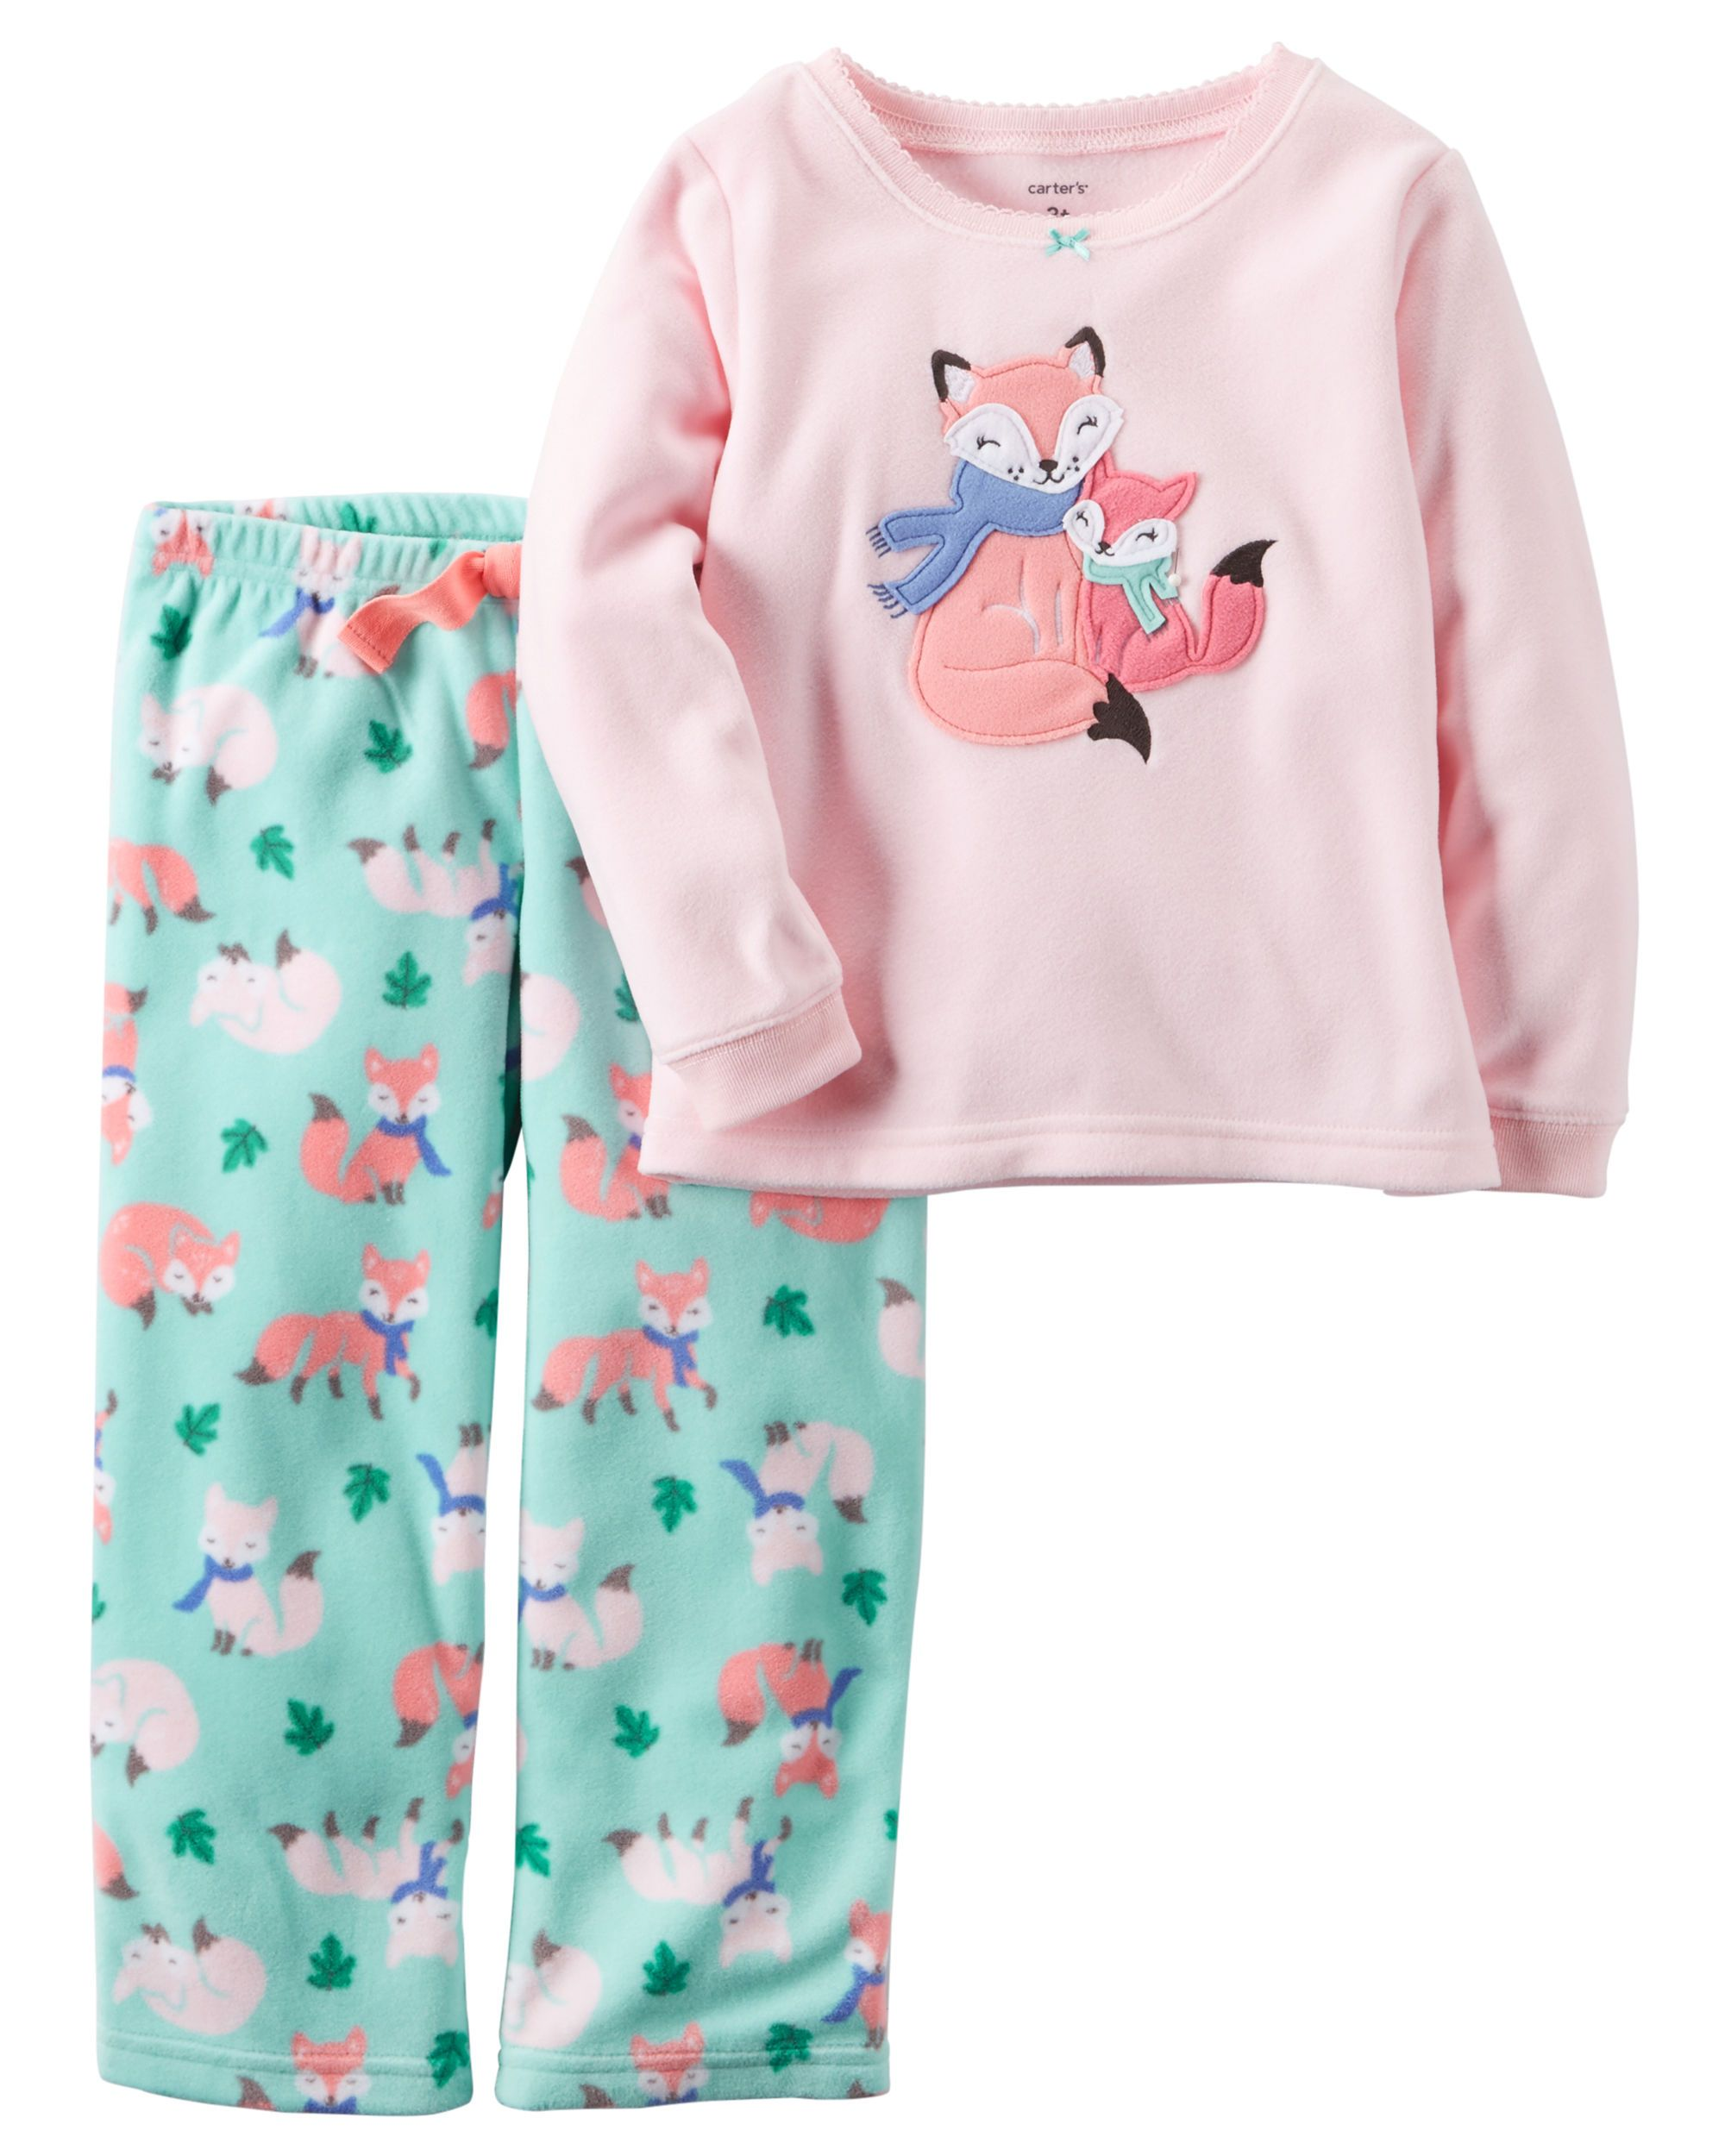 47cdac763 Toddler Girl 2-Piece Fleece PJs from Carters.com. Shop clothing &  accessories from a trusted name in kids, toddlers, and baby clothes.